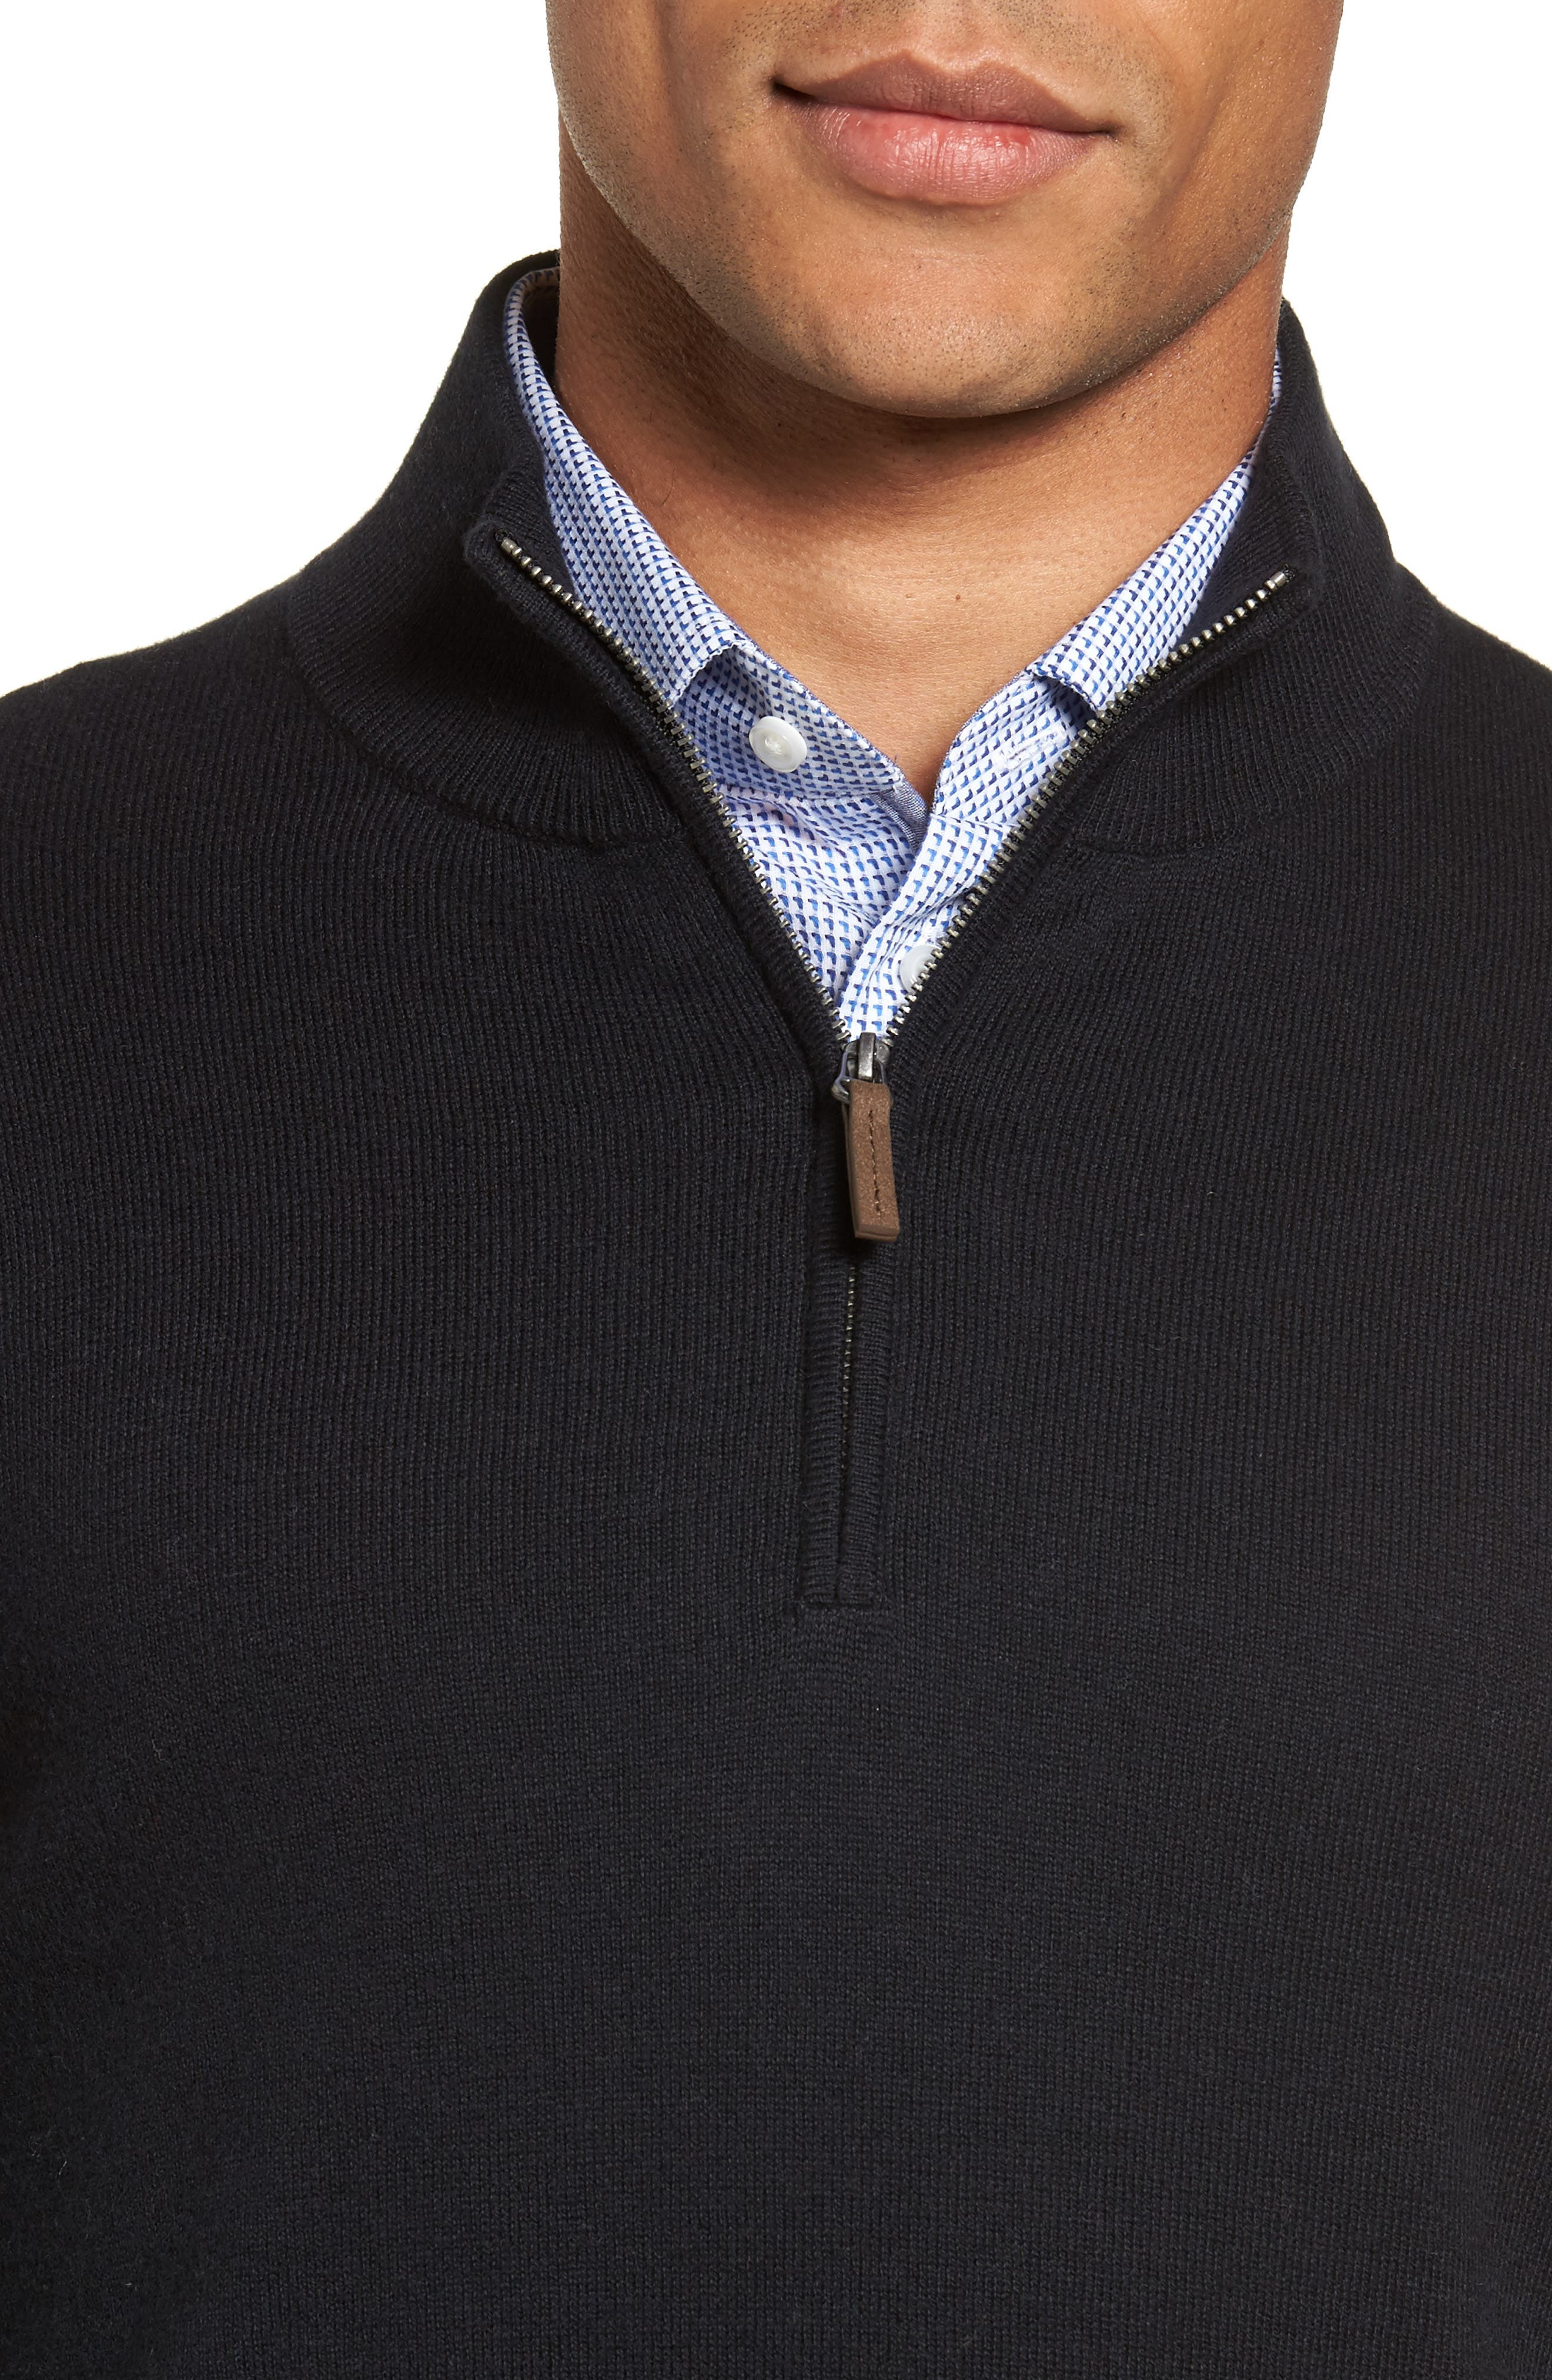 Half Zip Cotton & Cashmere Pullover,                             Alternate thumbnail 4, color,                             Black Caviar